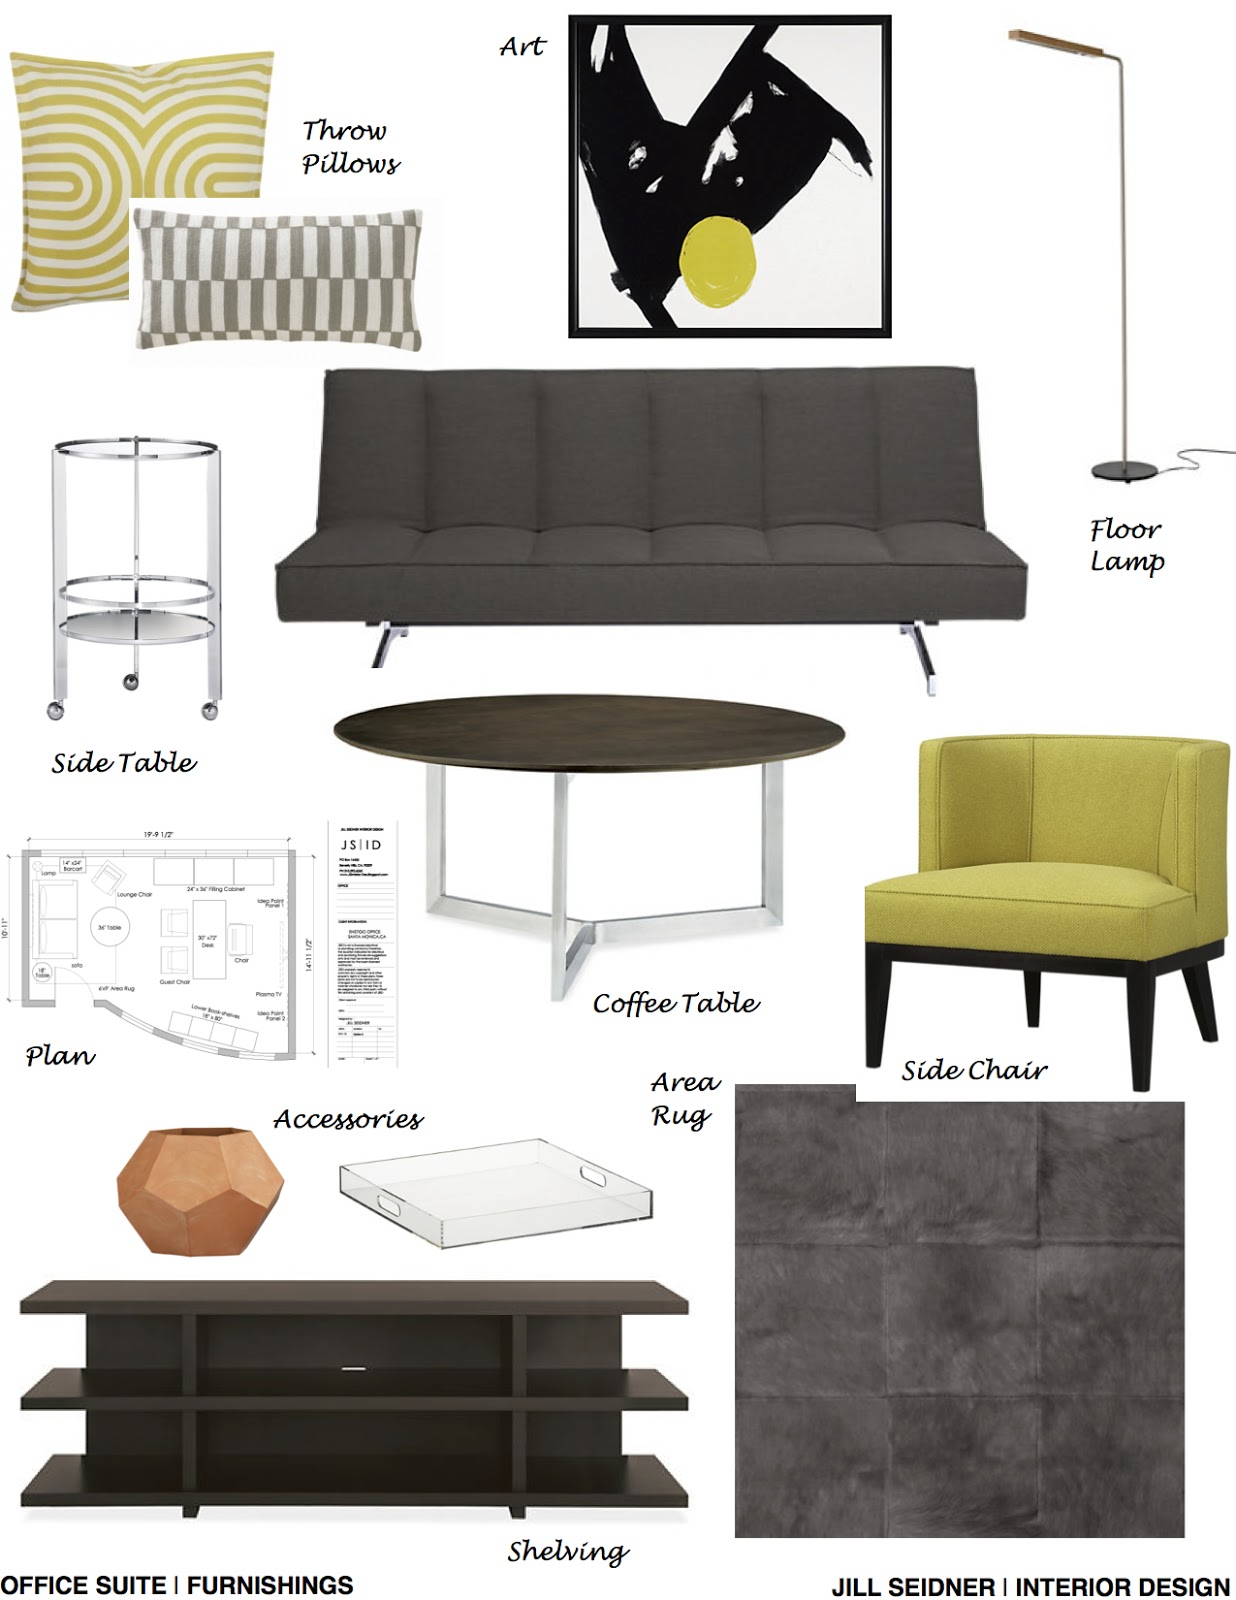 Jill Seidner Interior Design Concept Boards